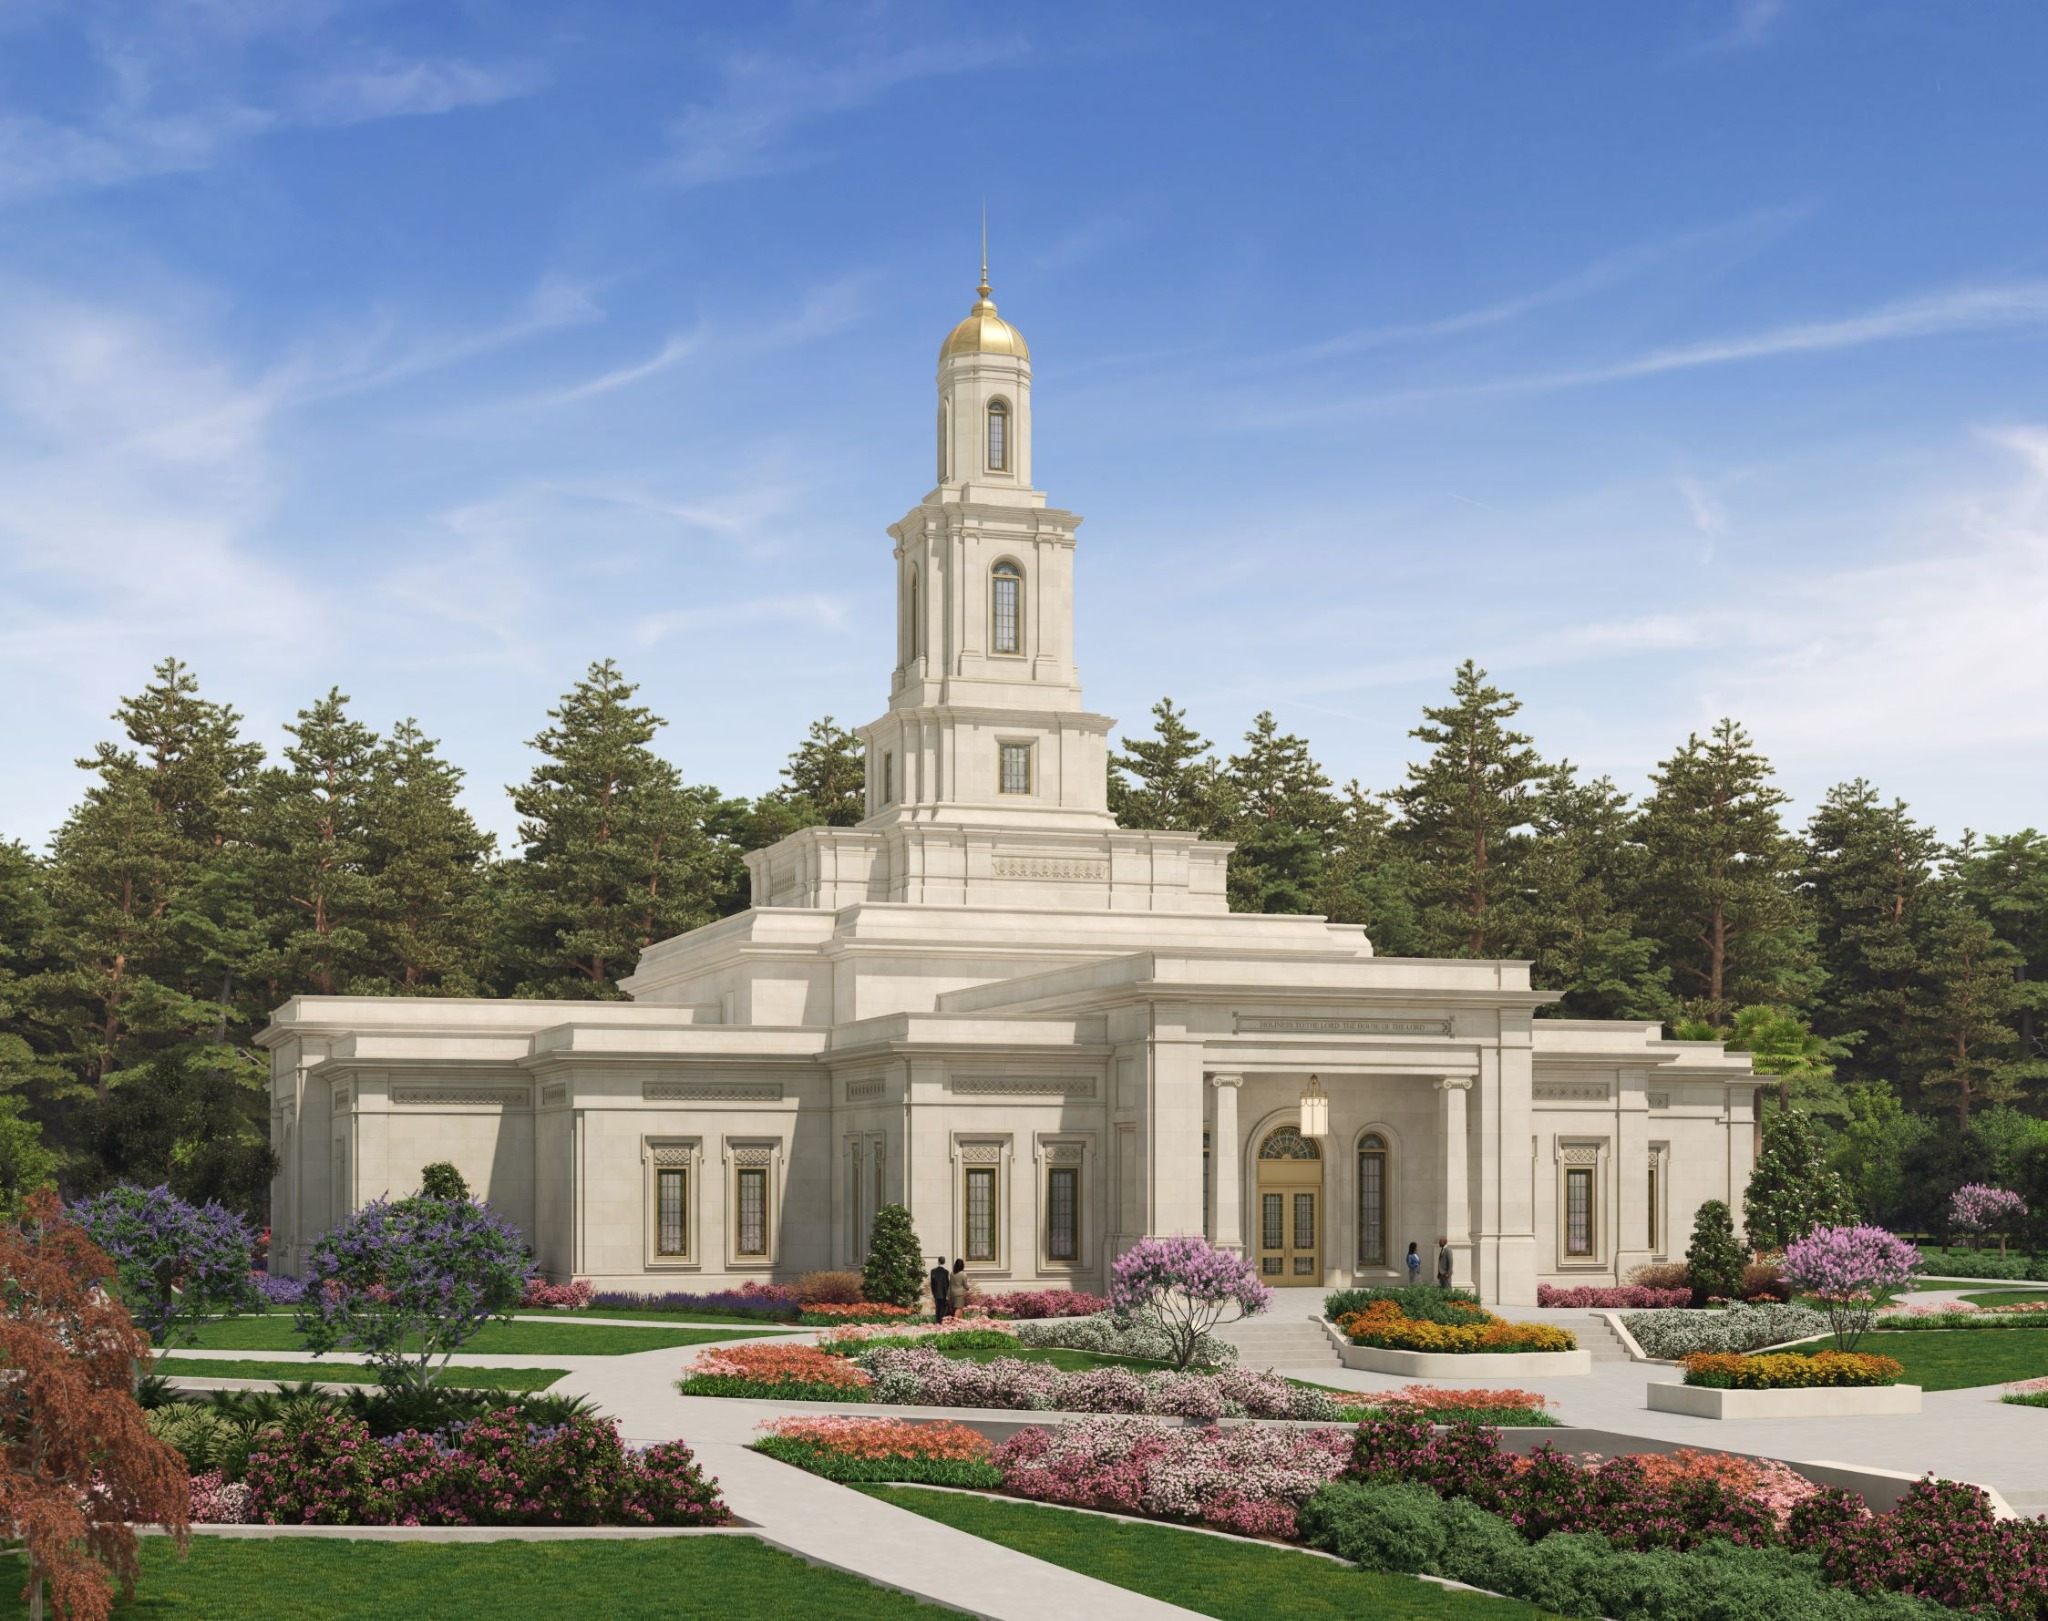 Tallahassee Florida Temple - 29,000 sq. ft.